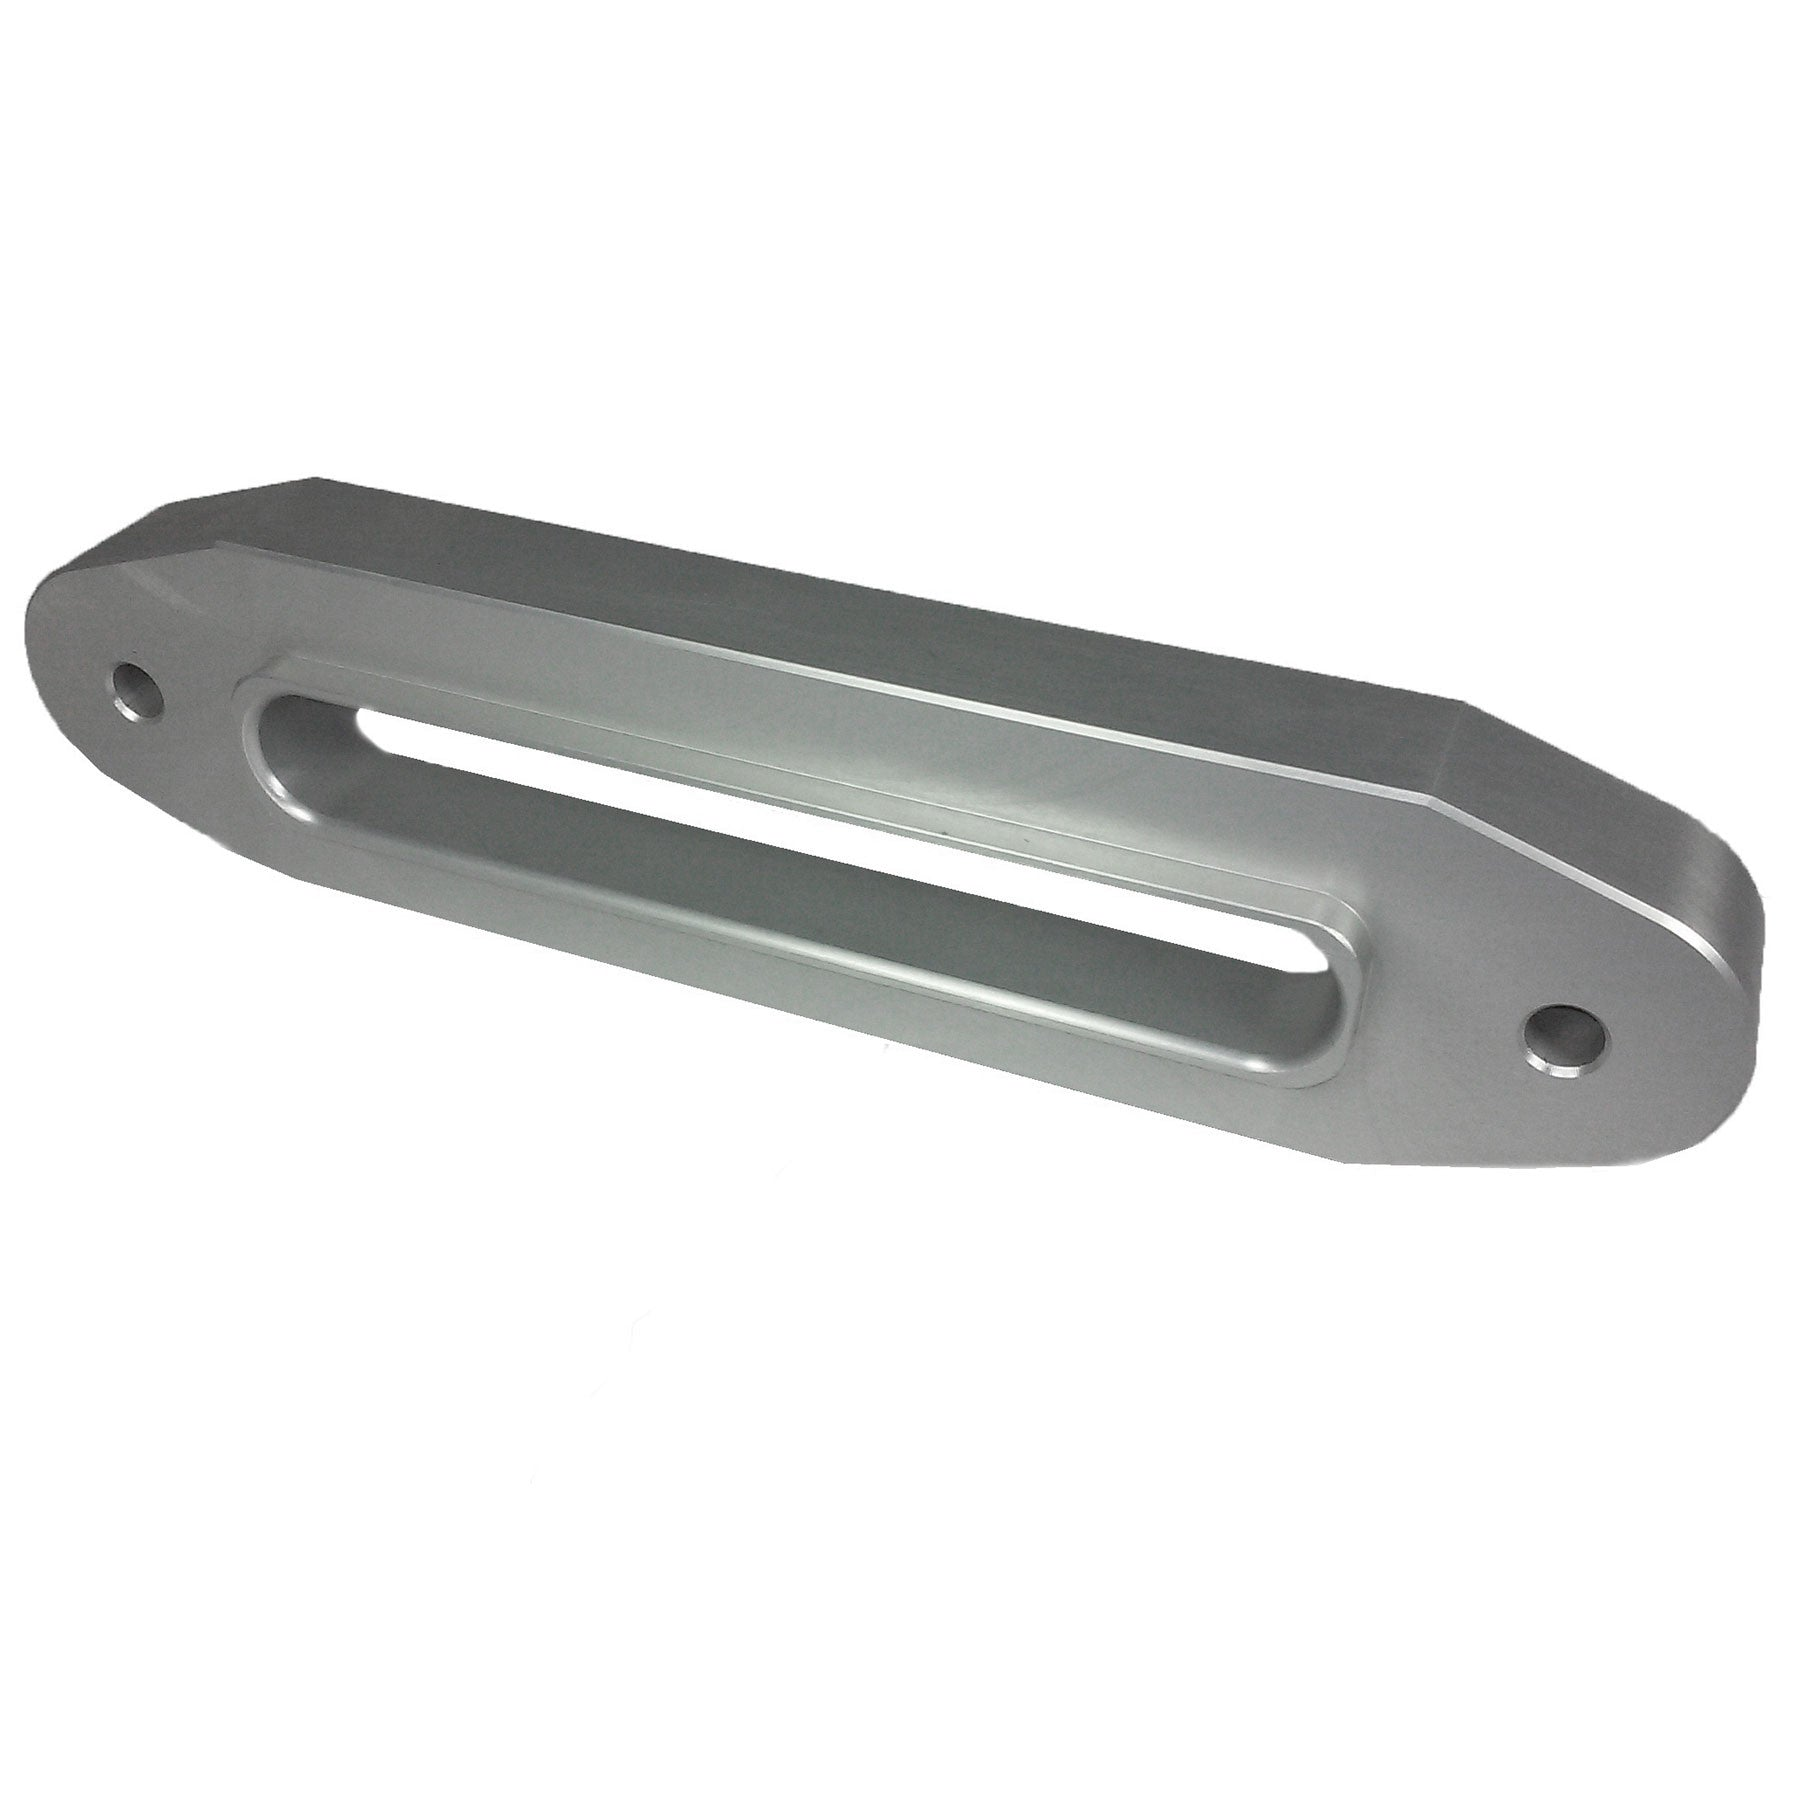 "Silver 10"" Double Thick  Fairlead with Large Inside Radii and Liner."